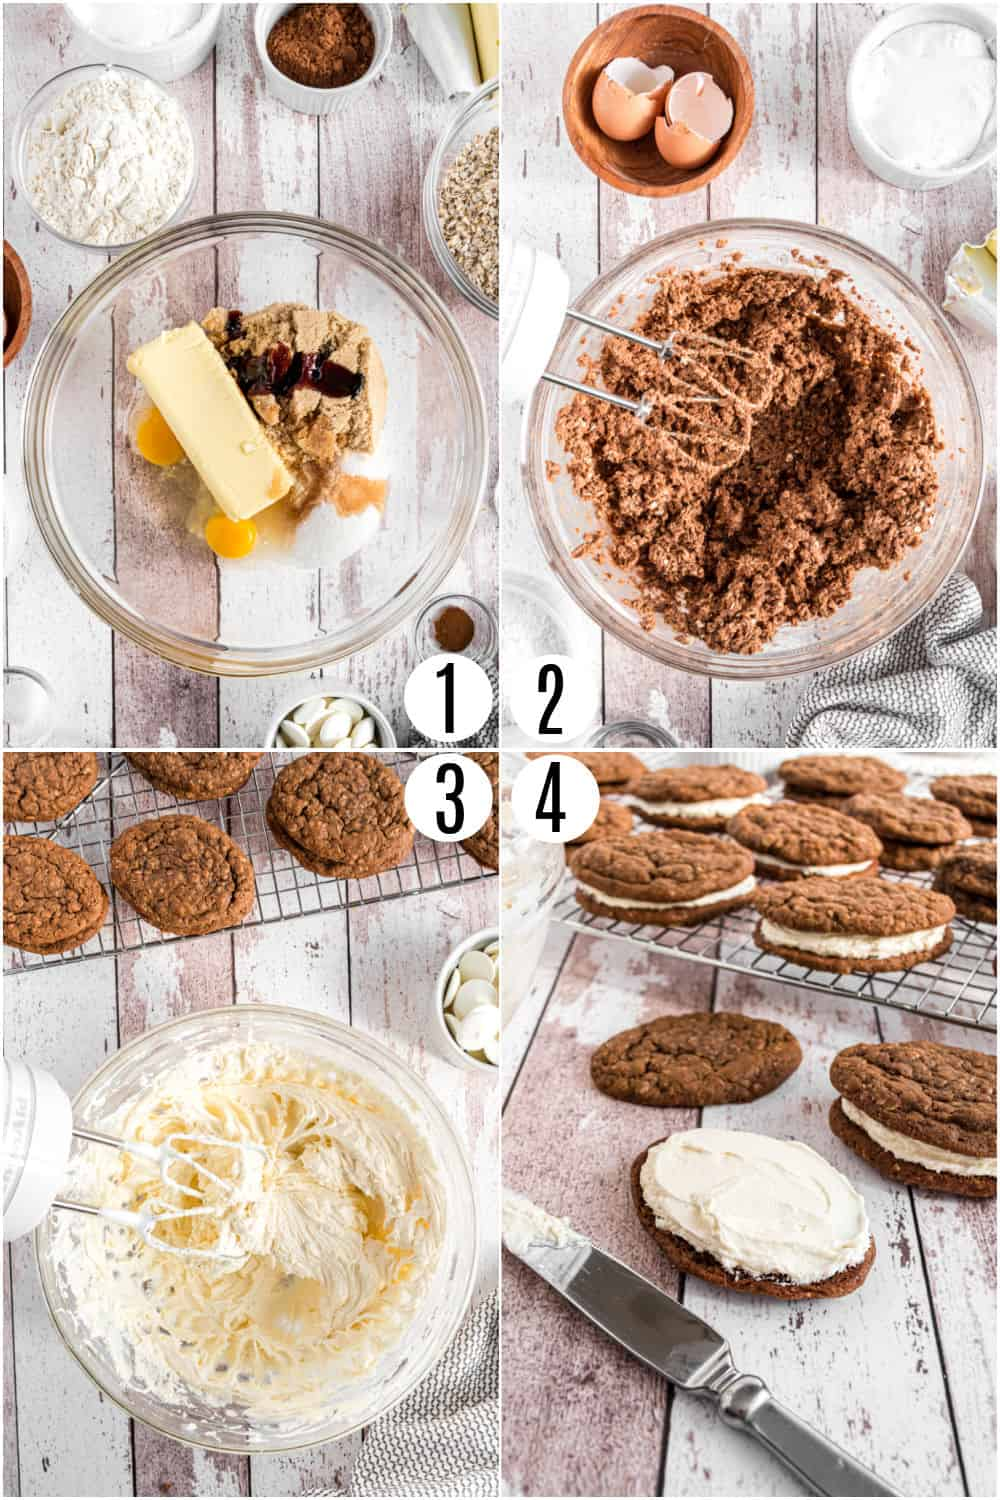 Step by step photos showing how to make chocolate oatmeal cream pies.